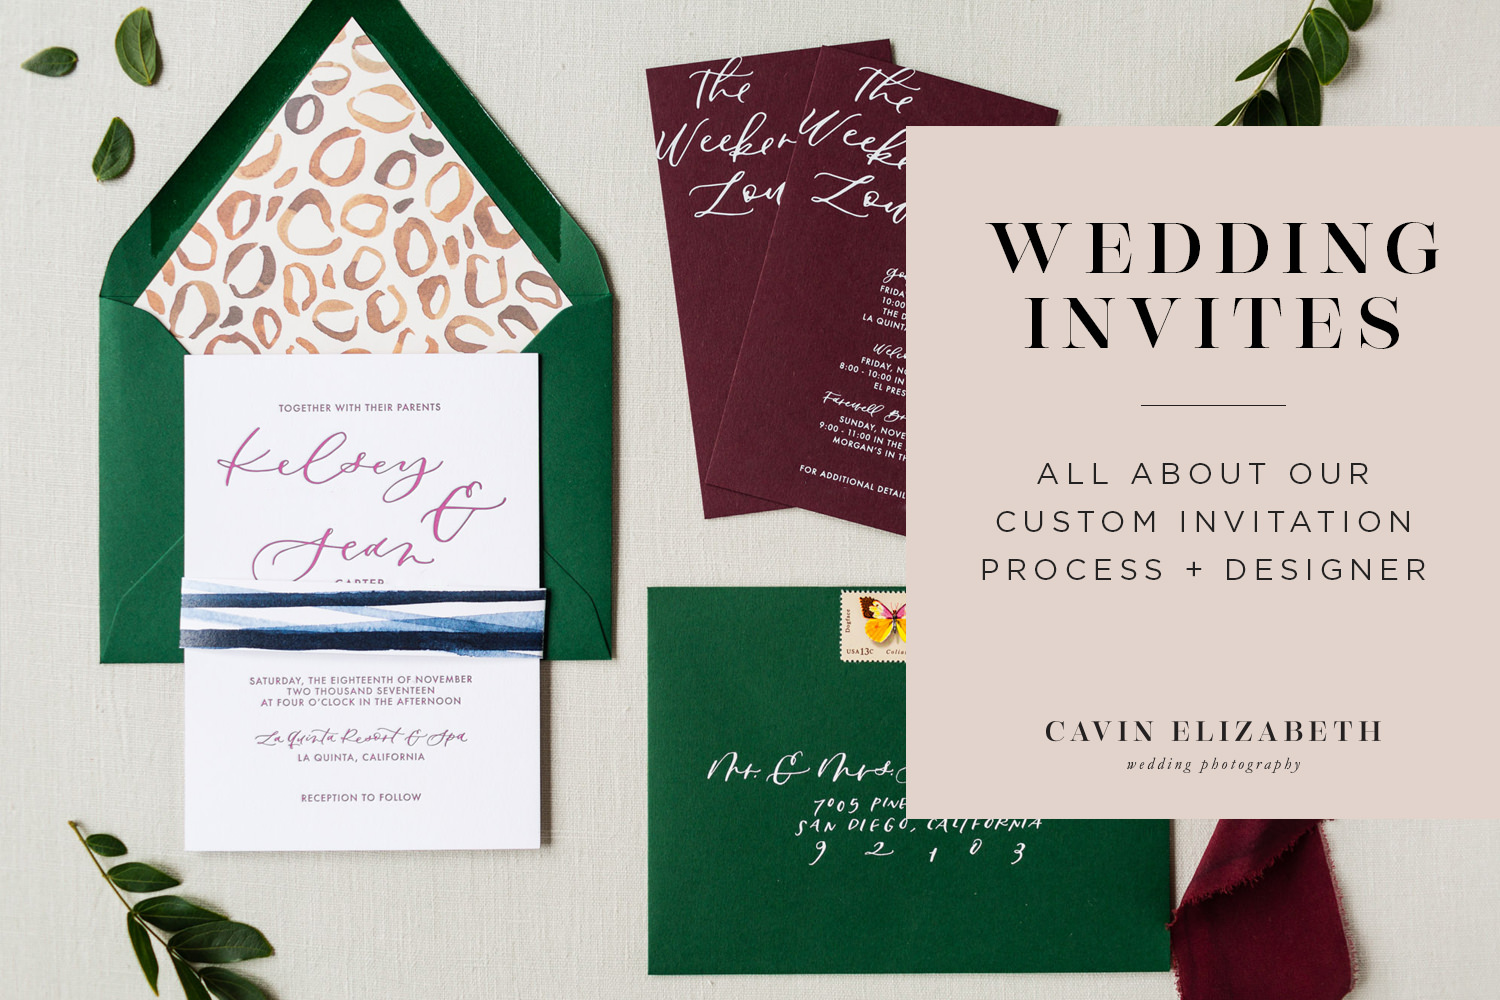 How We Chose Our Custom Wedding Invitation Designer